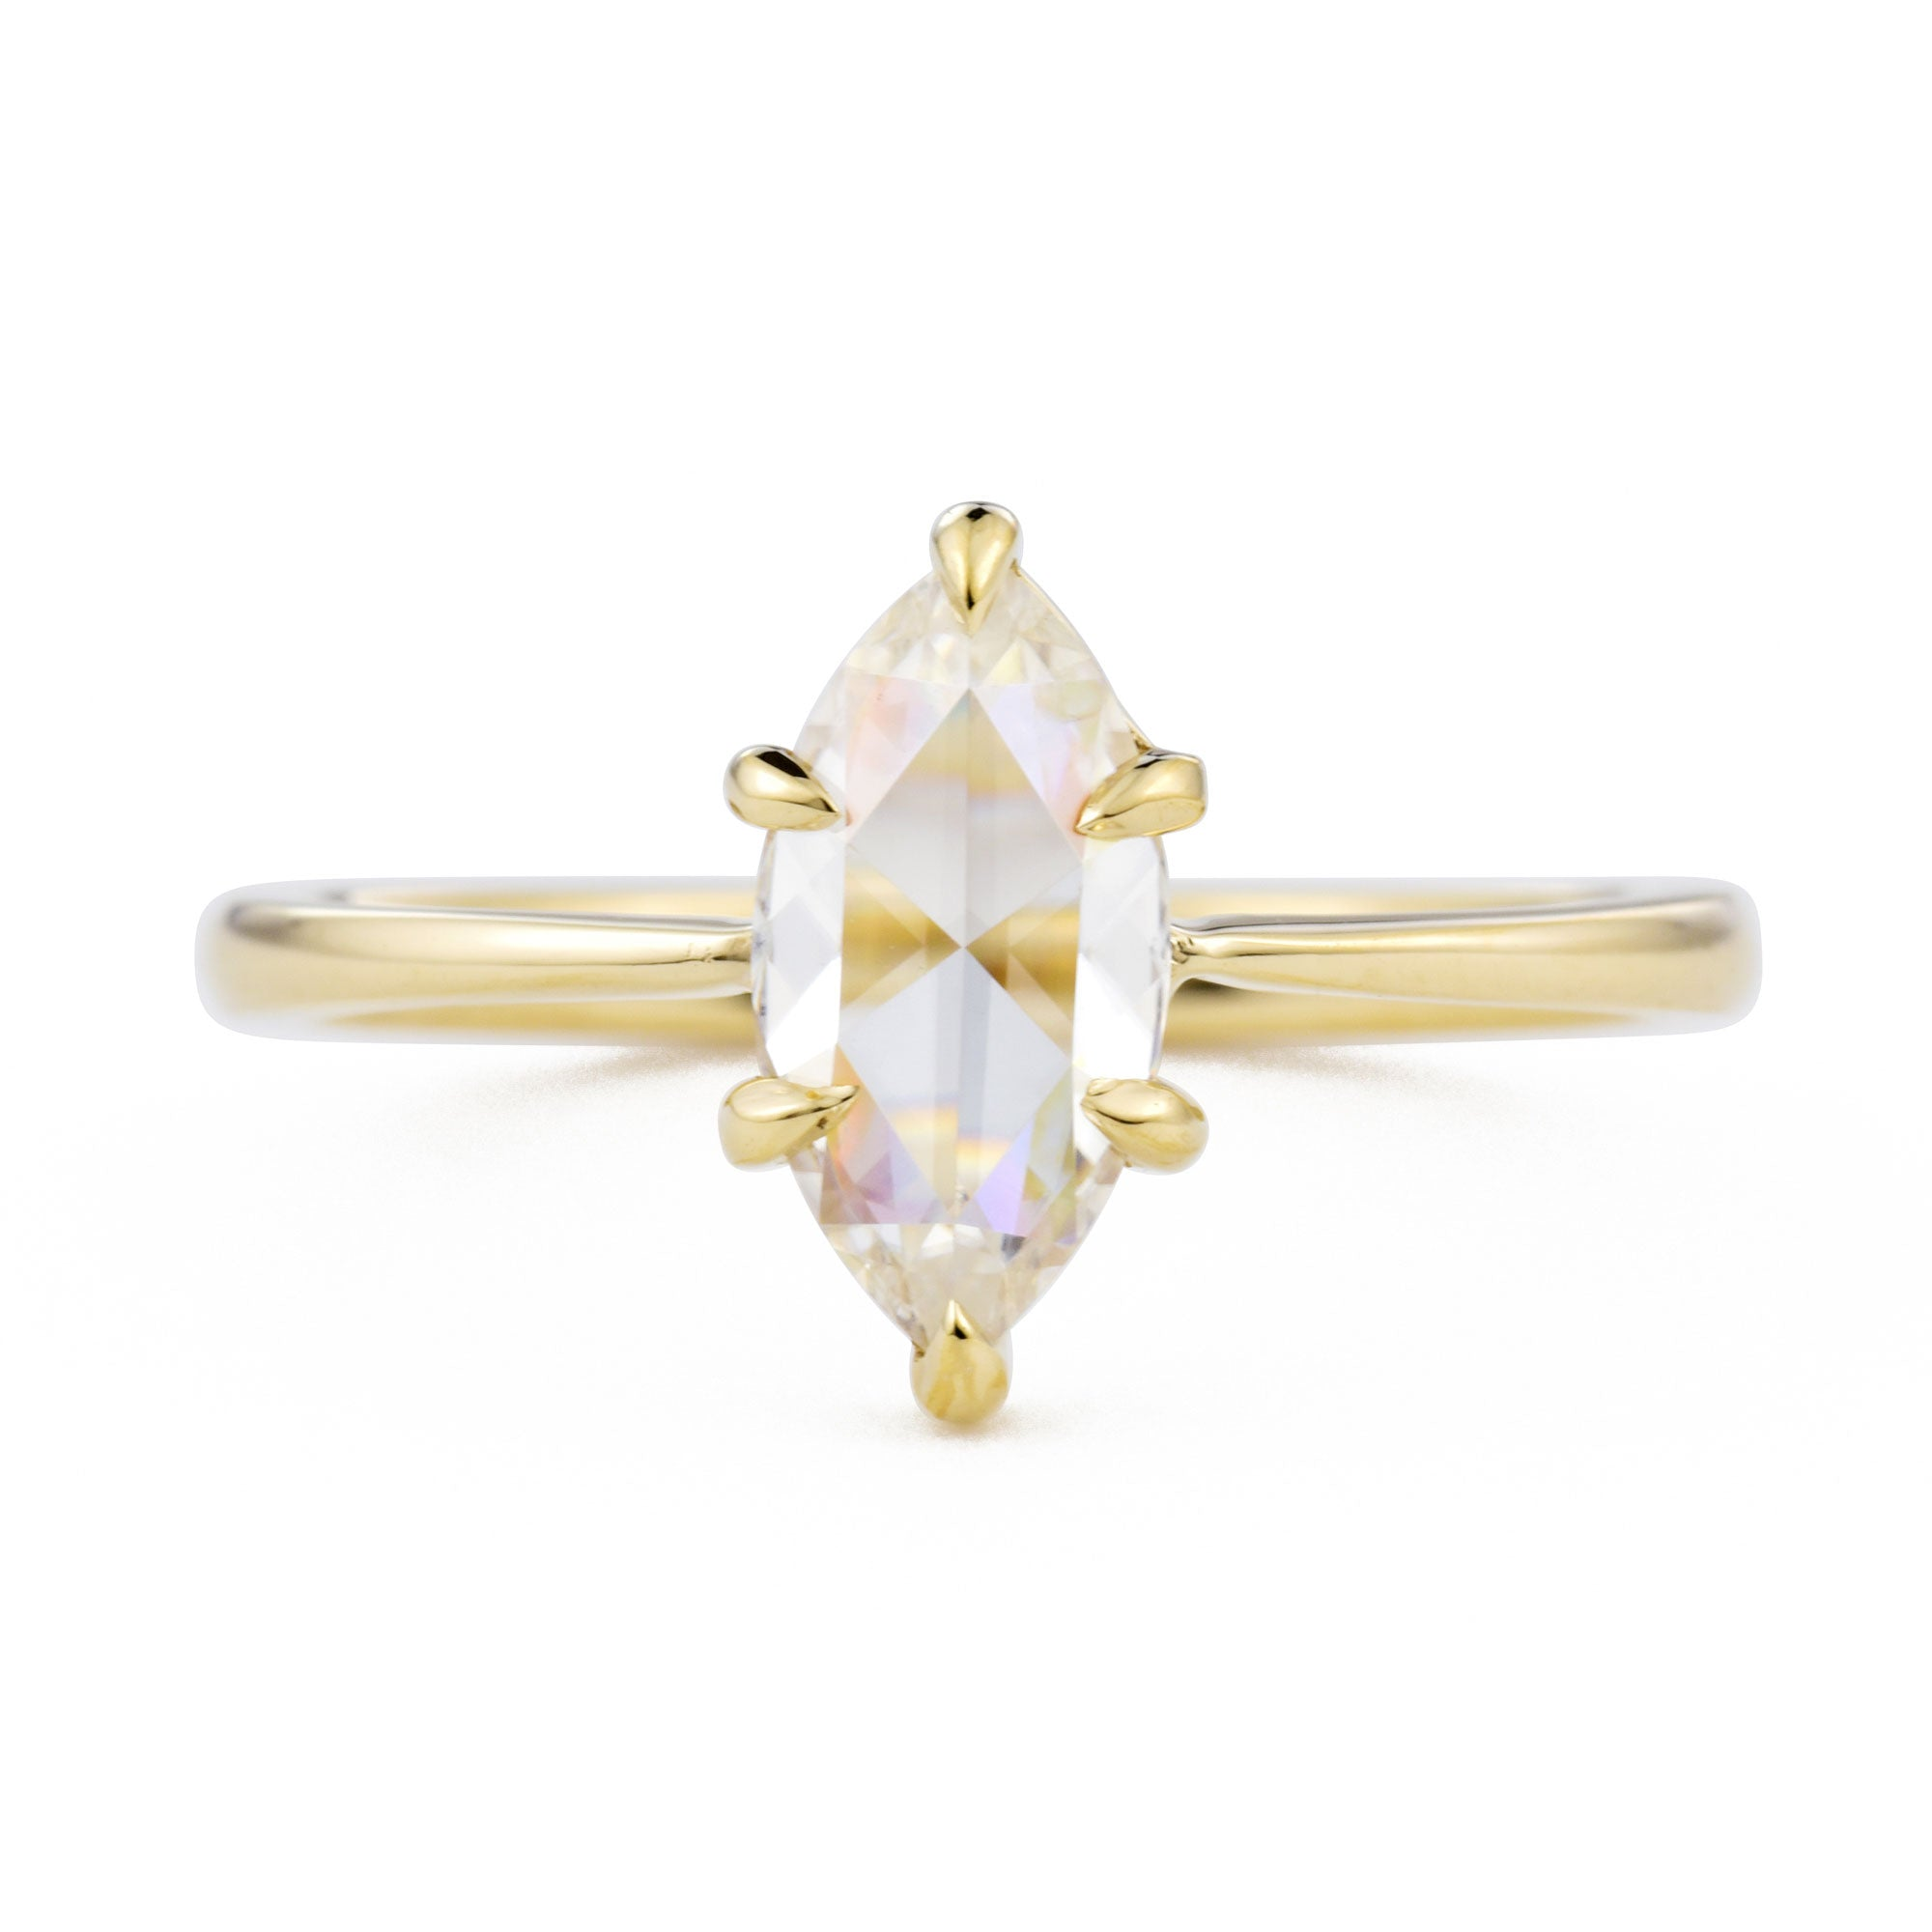 Eva Marquise Rose Cut Moissanite Engagement Ring in yellow gold